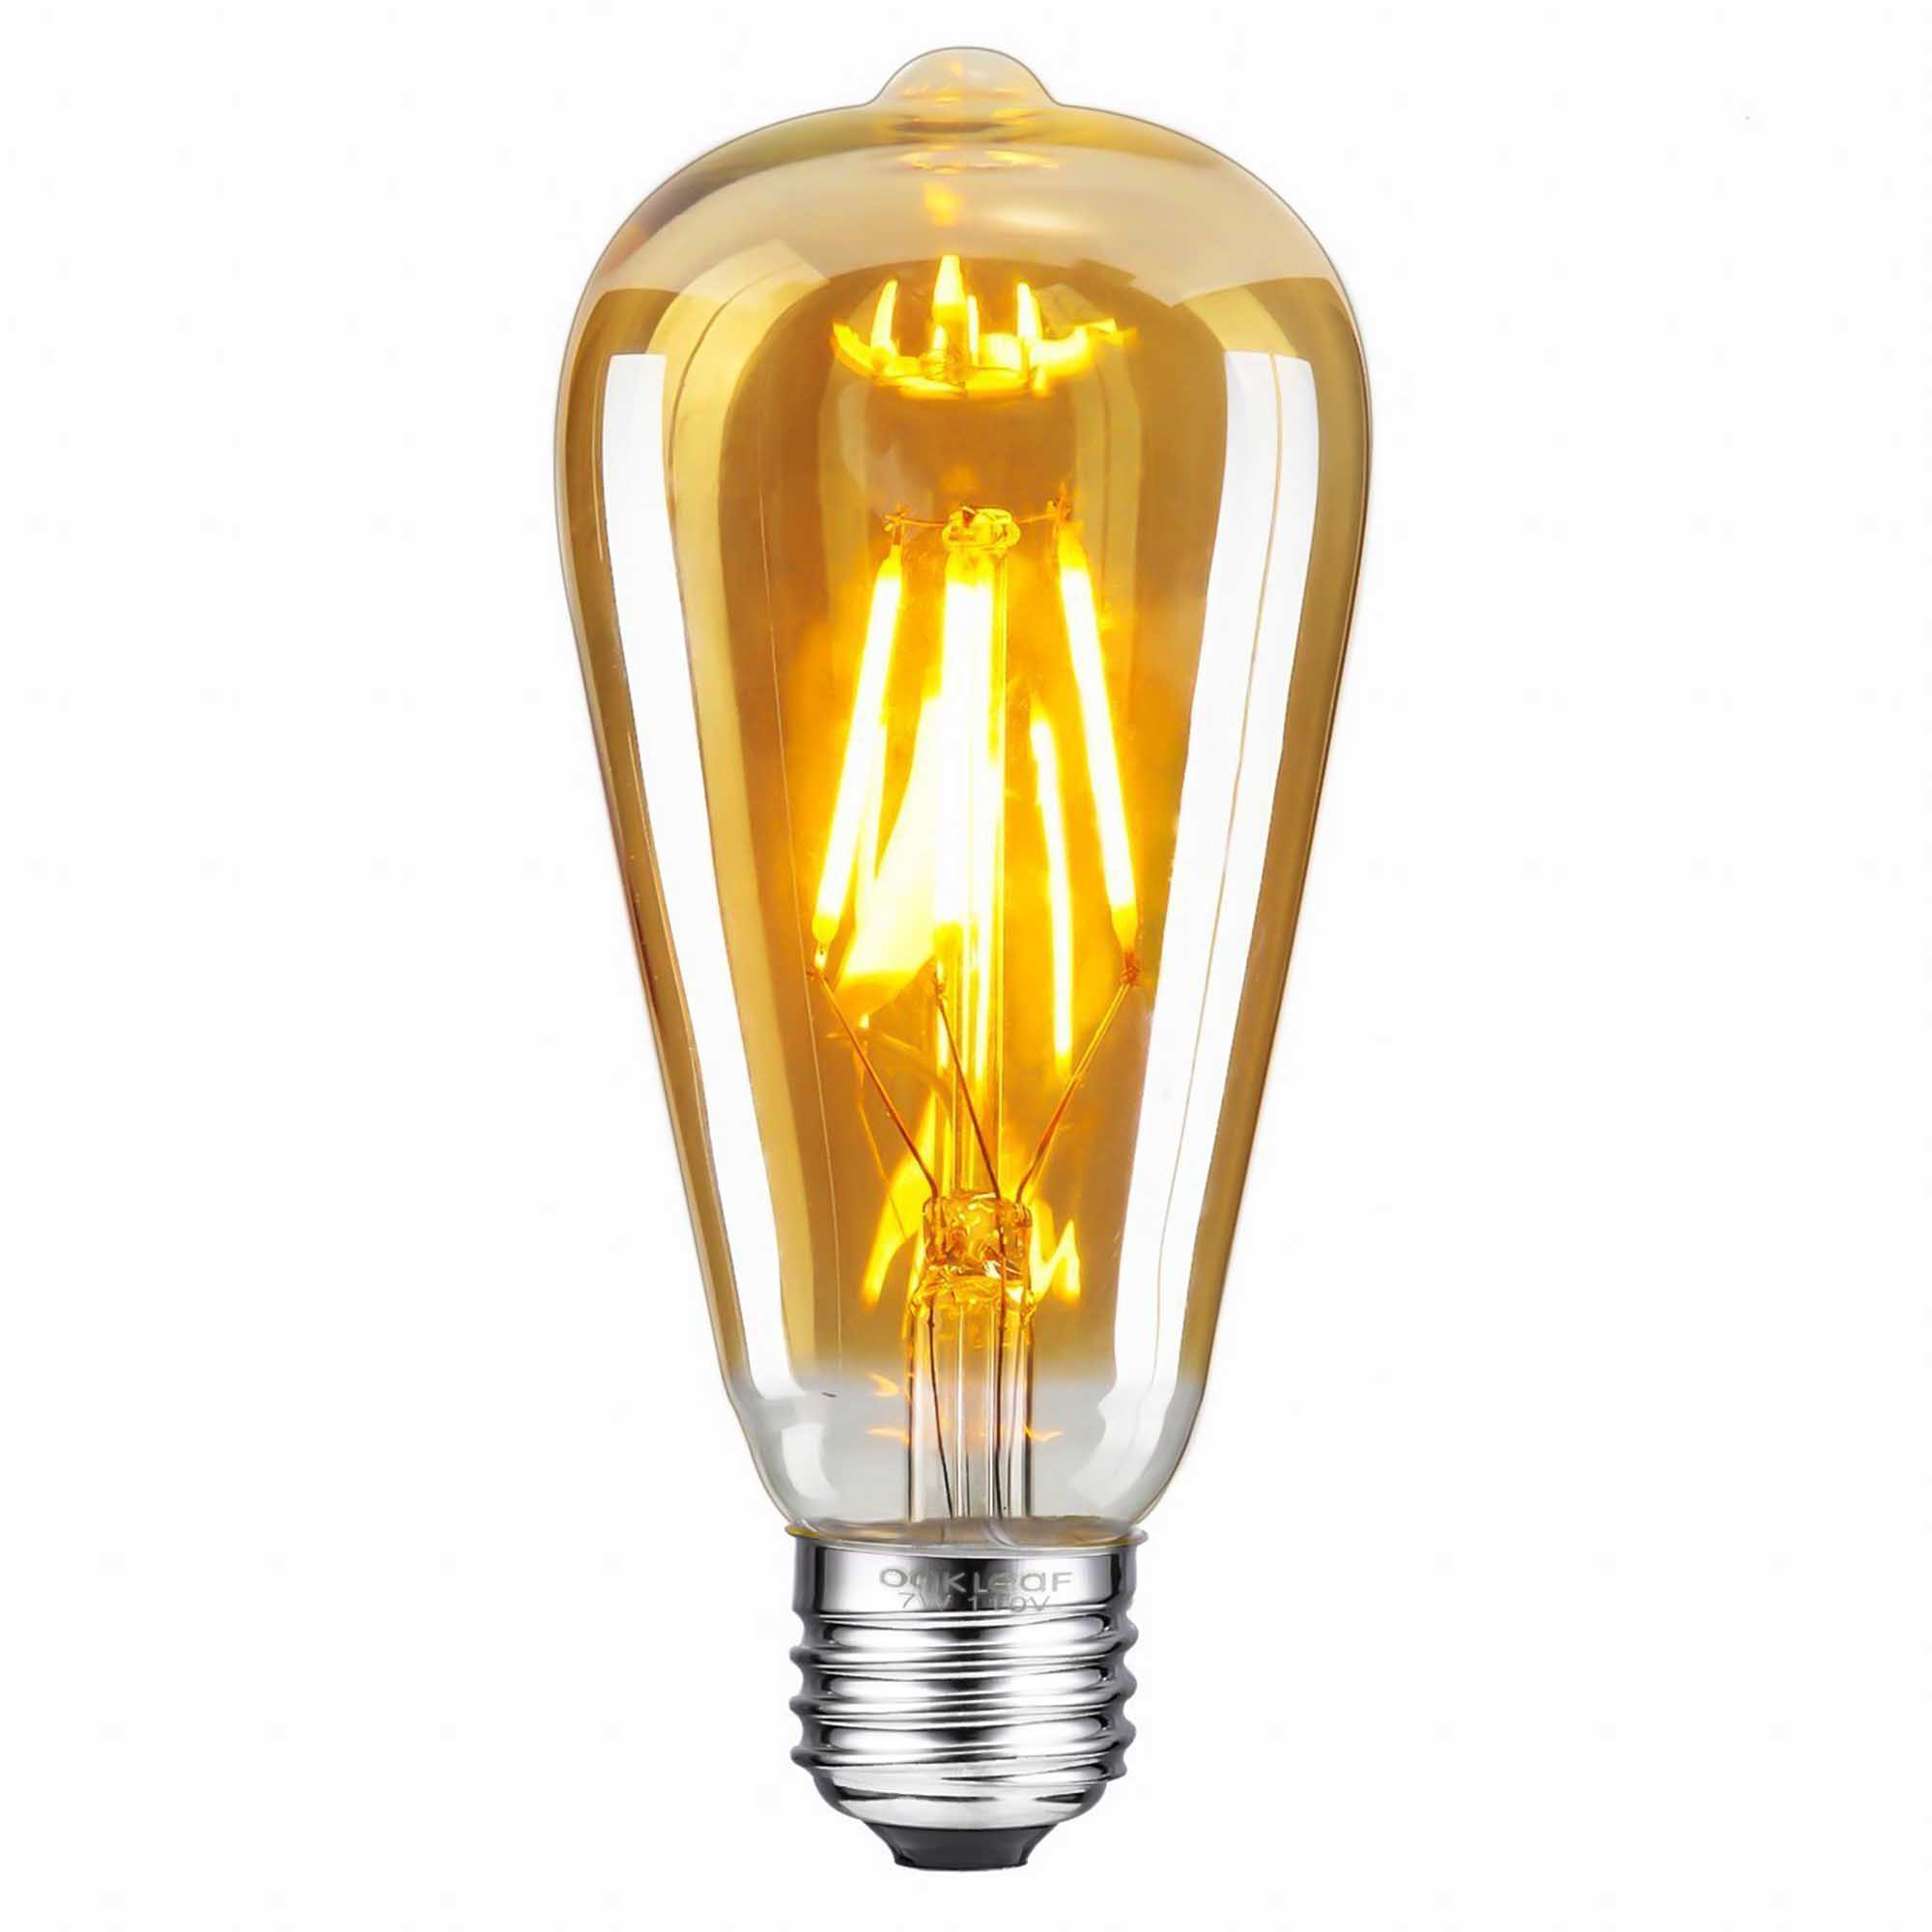 ST64 Pear Shape Filament LED Bulb, 4 Watt, Industrial Decorative Vintage Light Lamp, Set of 2